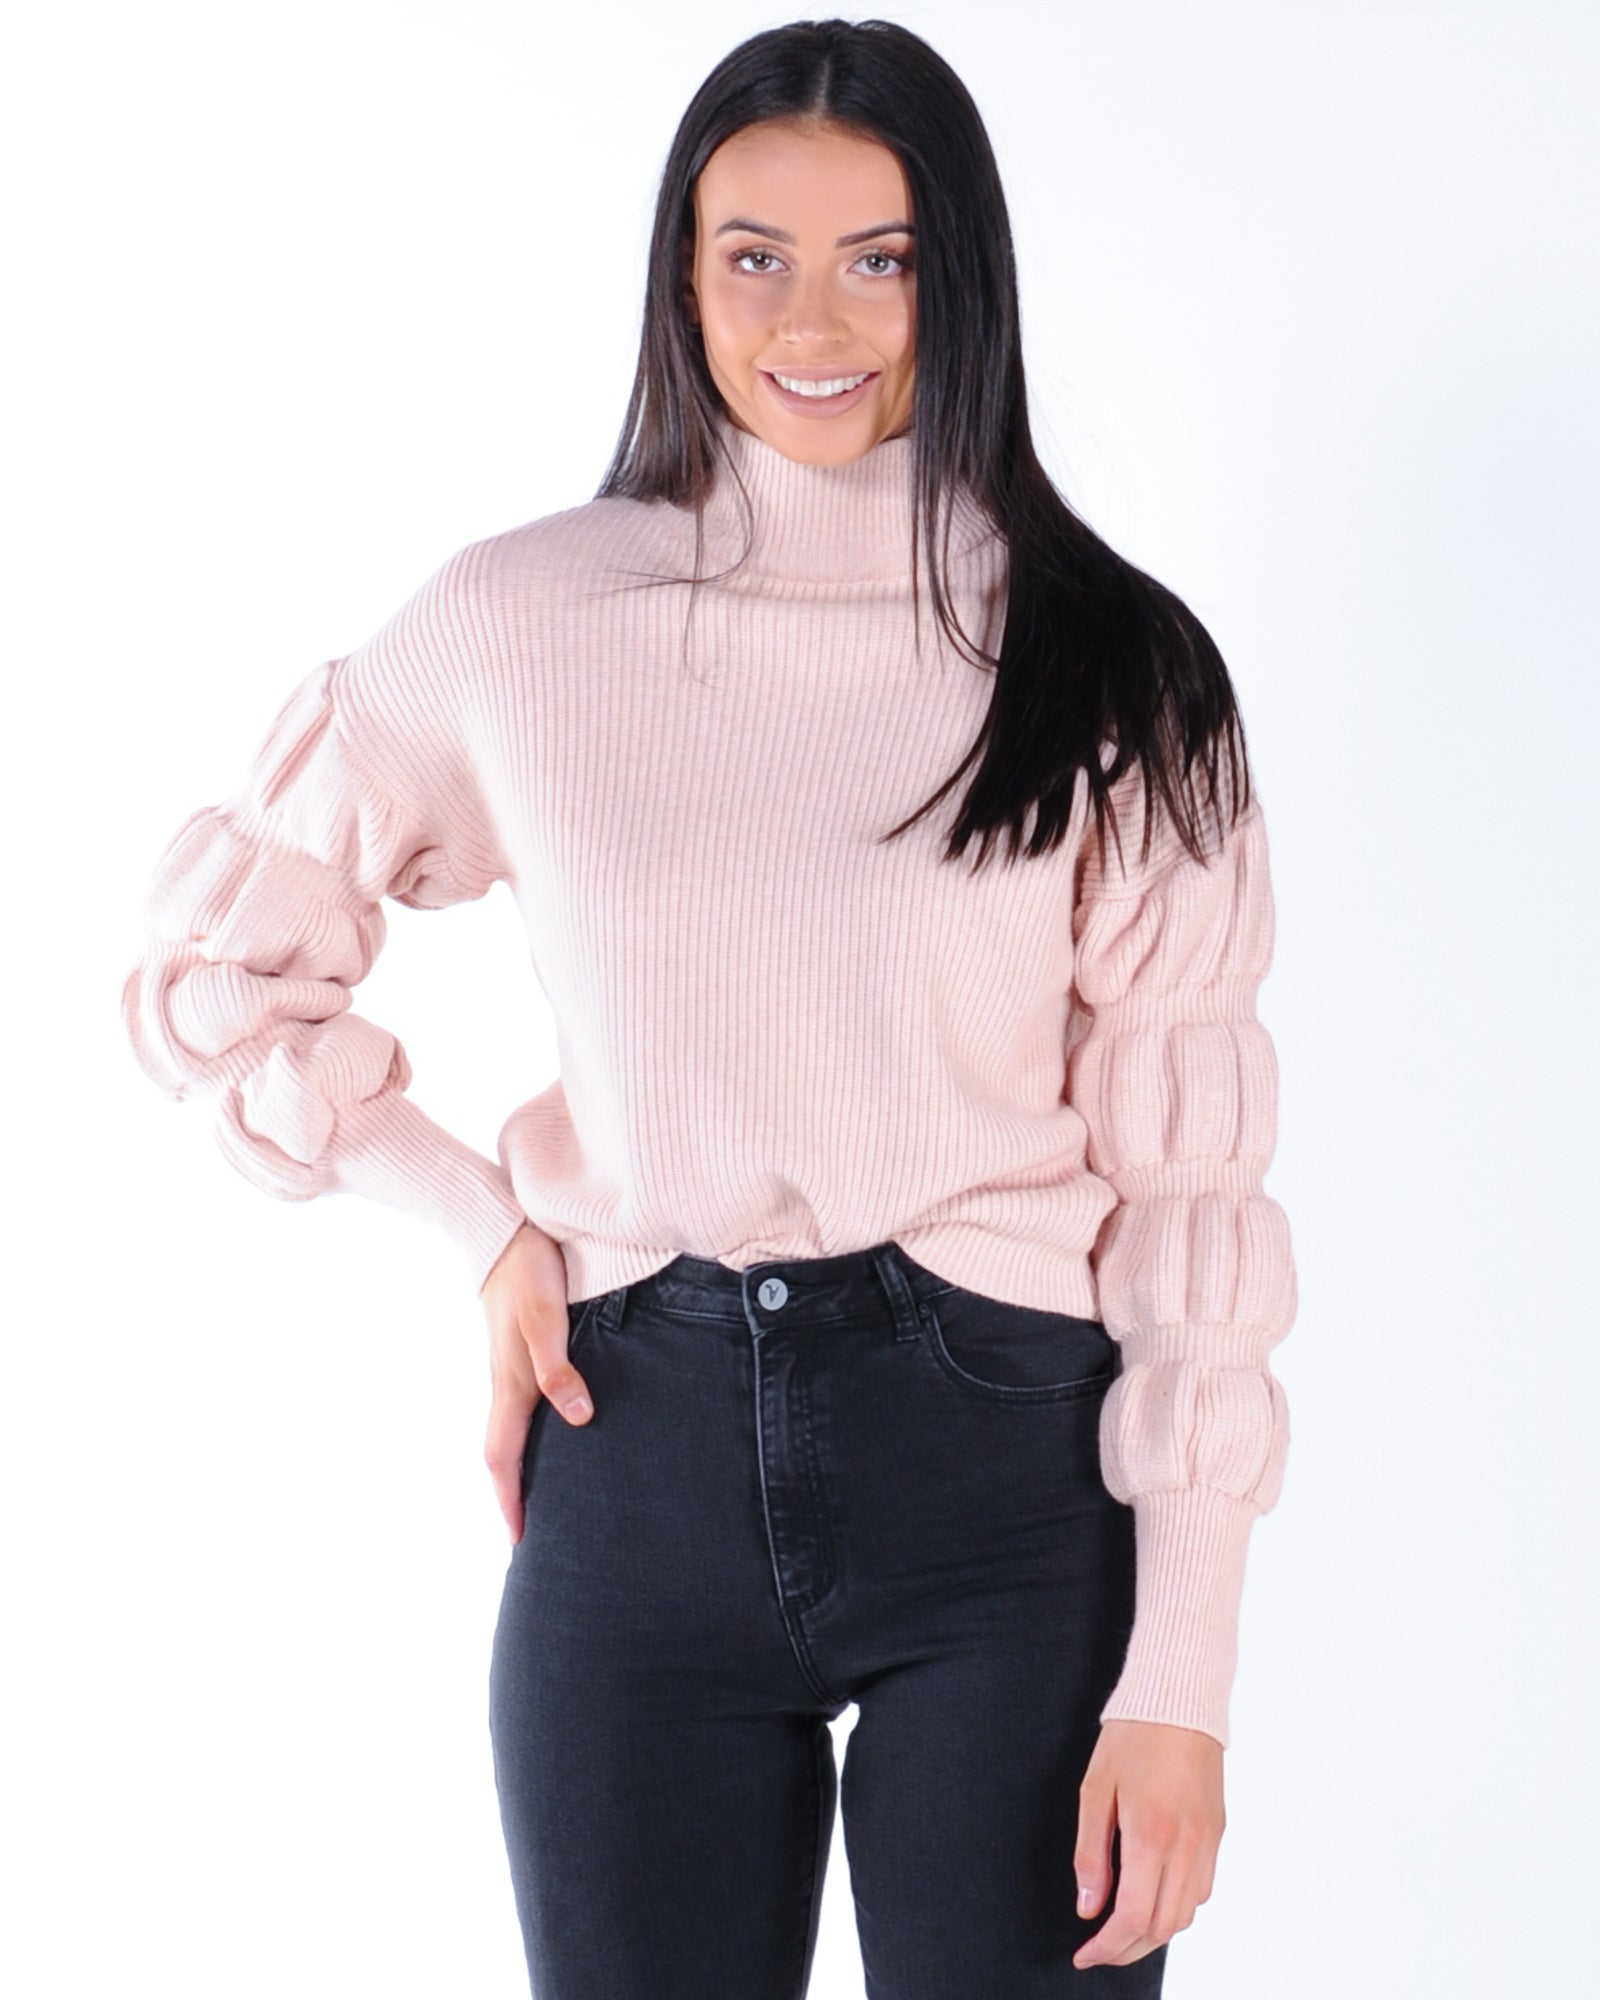 Oceans Apart Knit - Pink